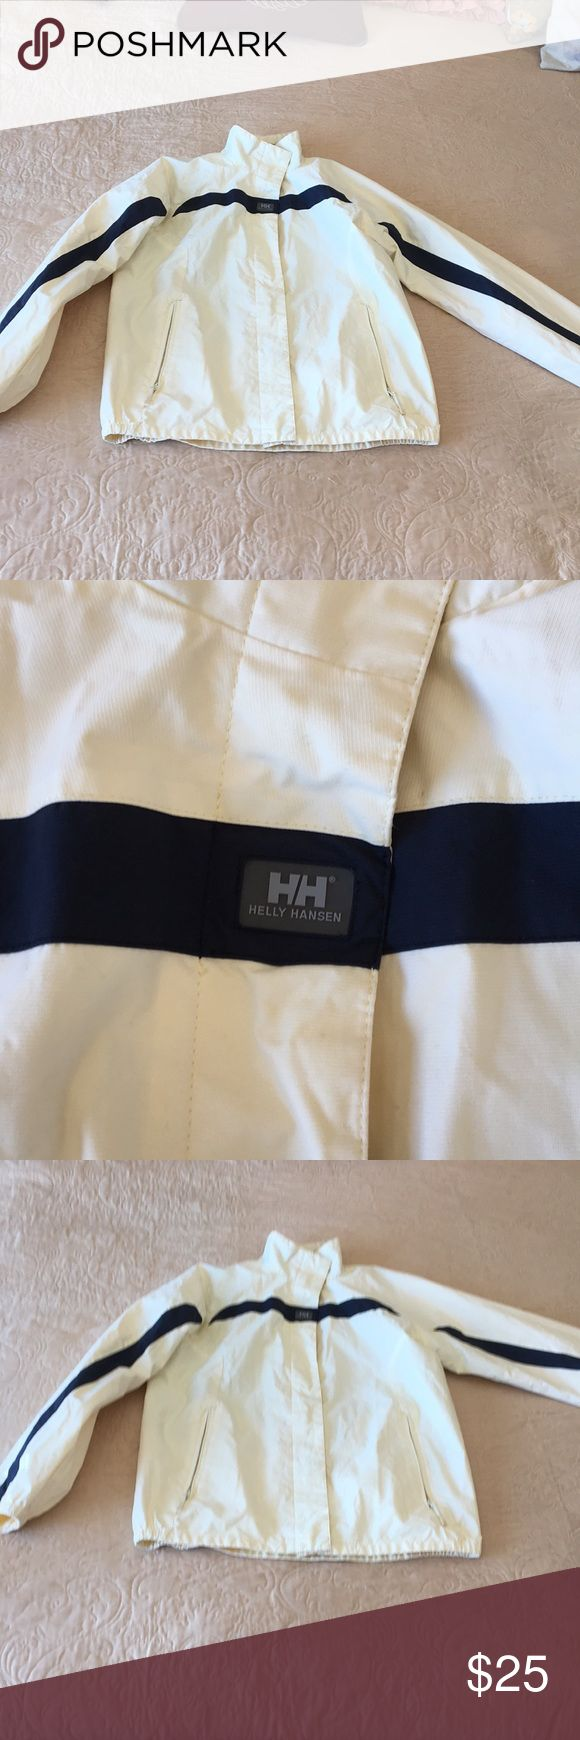 Helly Hansen sailing jacket This is a women's size large but it fits like a small to medium perfect for wind and rain windproof and breathable great for Sailing In great shape Helly Hansen Jackets & Coats